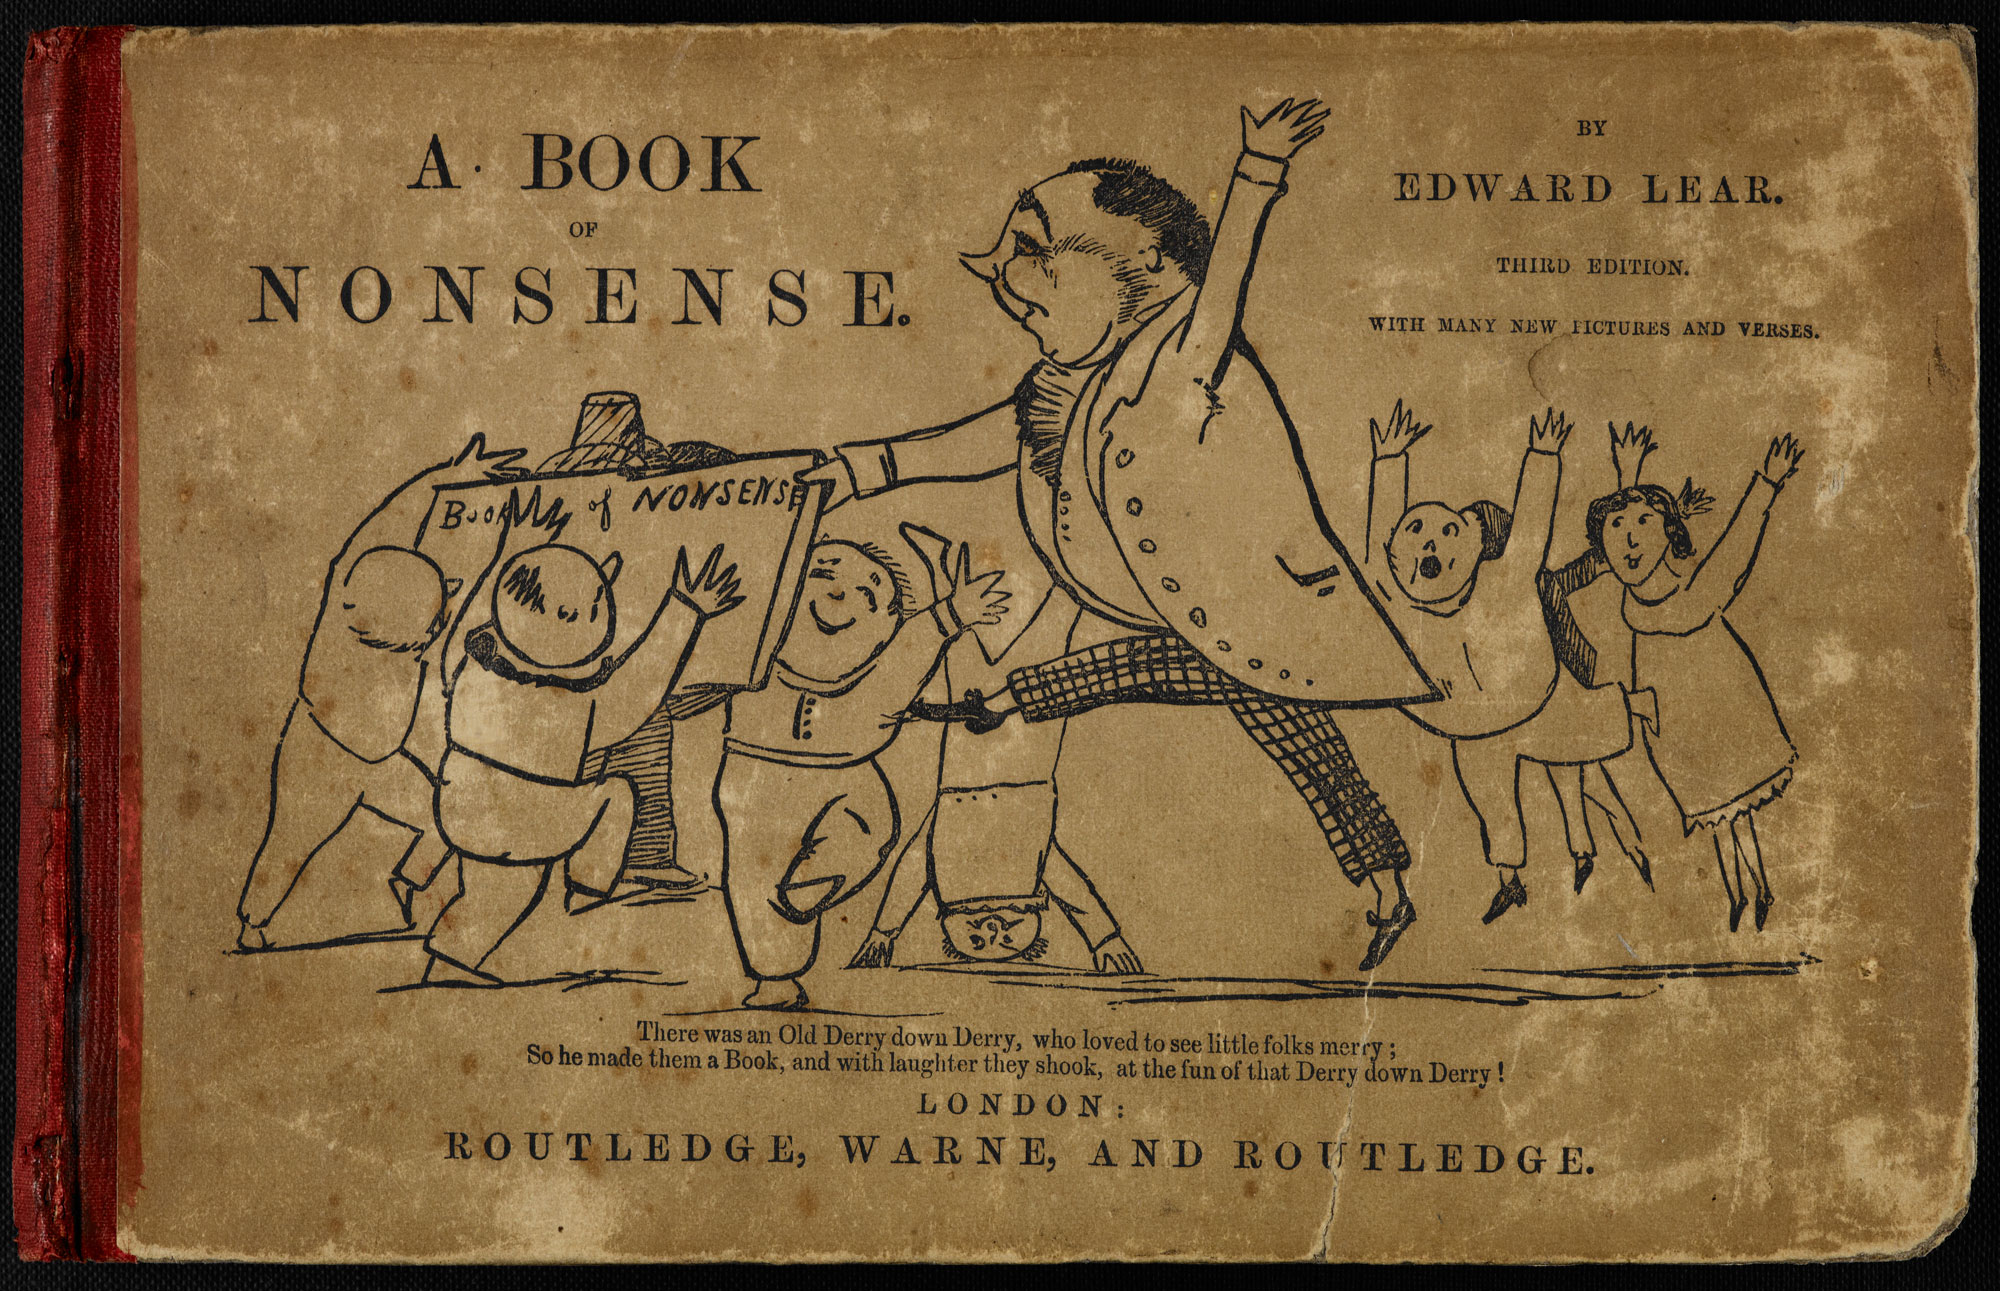 A Book of Nonsense by Edward Lear [page: front cover]